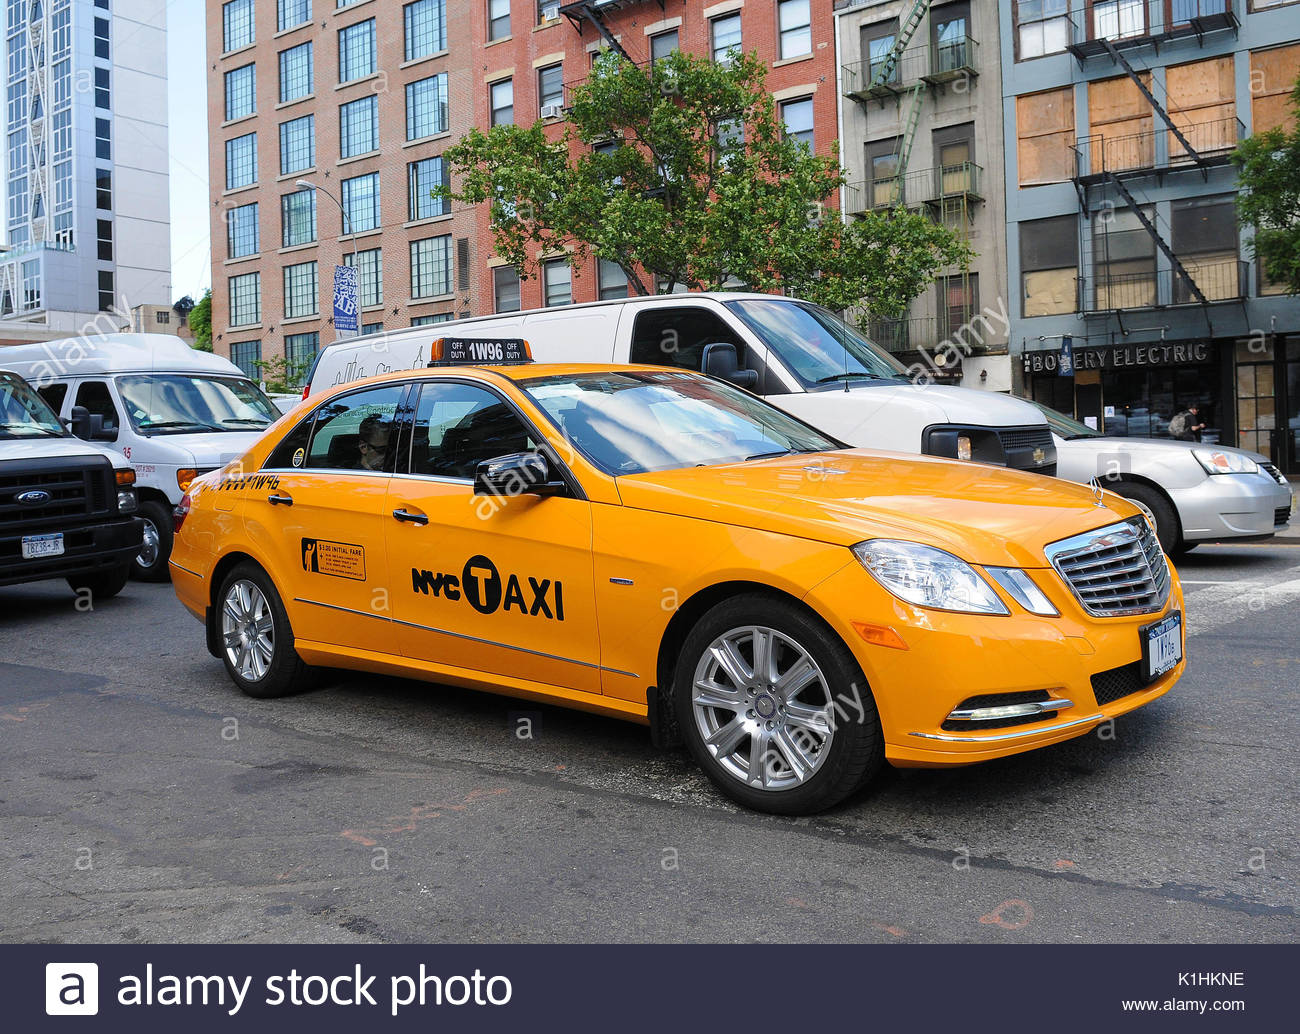 Nyc taxi cab mercedes benz yellow taxi cab spotted on the for Mercedes benz of new york